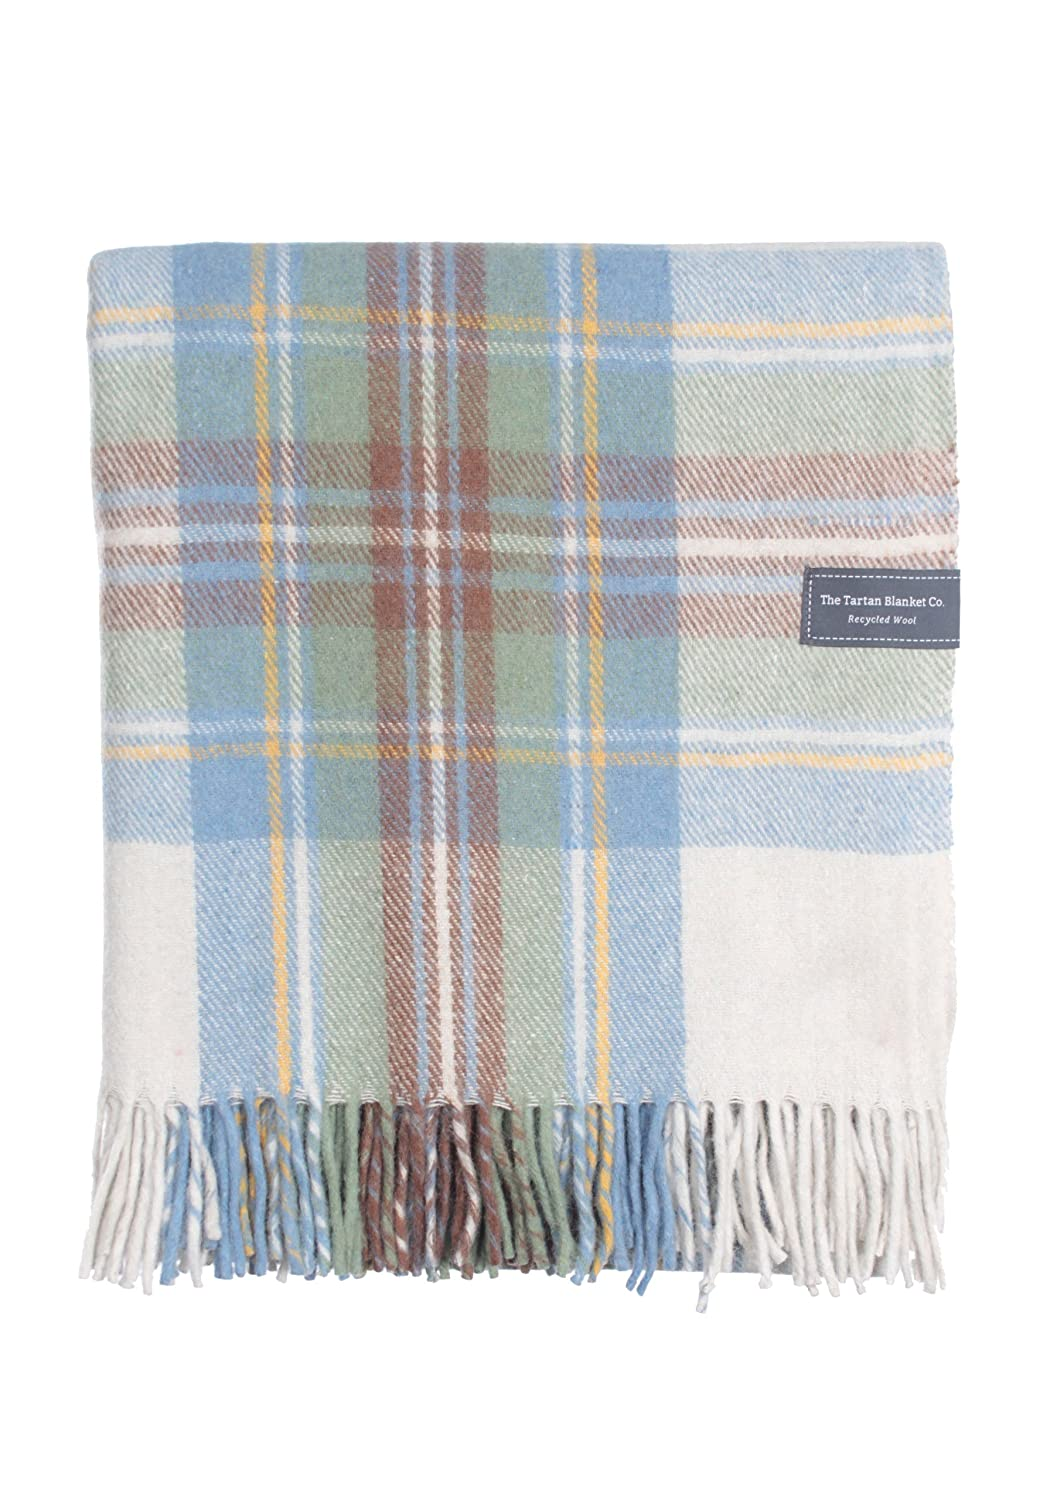 The Tartan Blanket Co. Couverture recyclée en laine – style tartan écossais Stewart Muted Blue